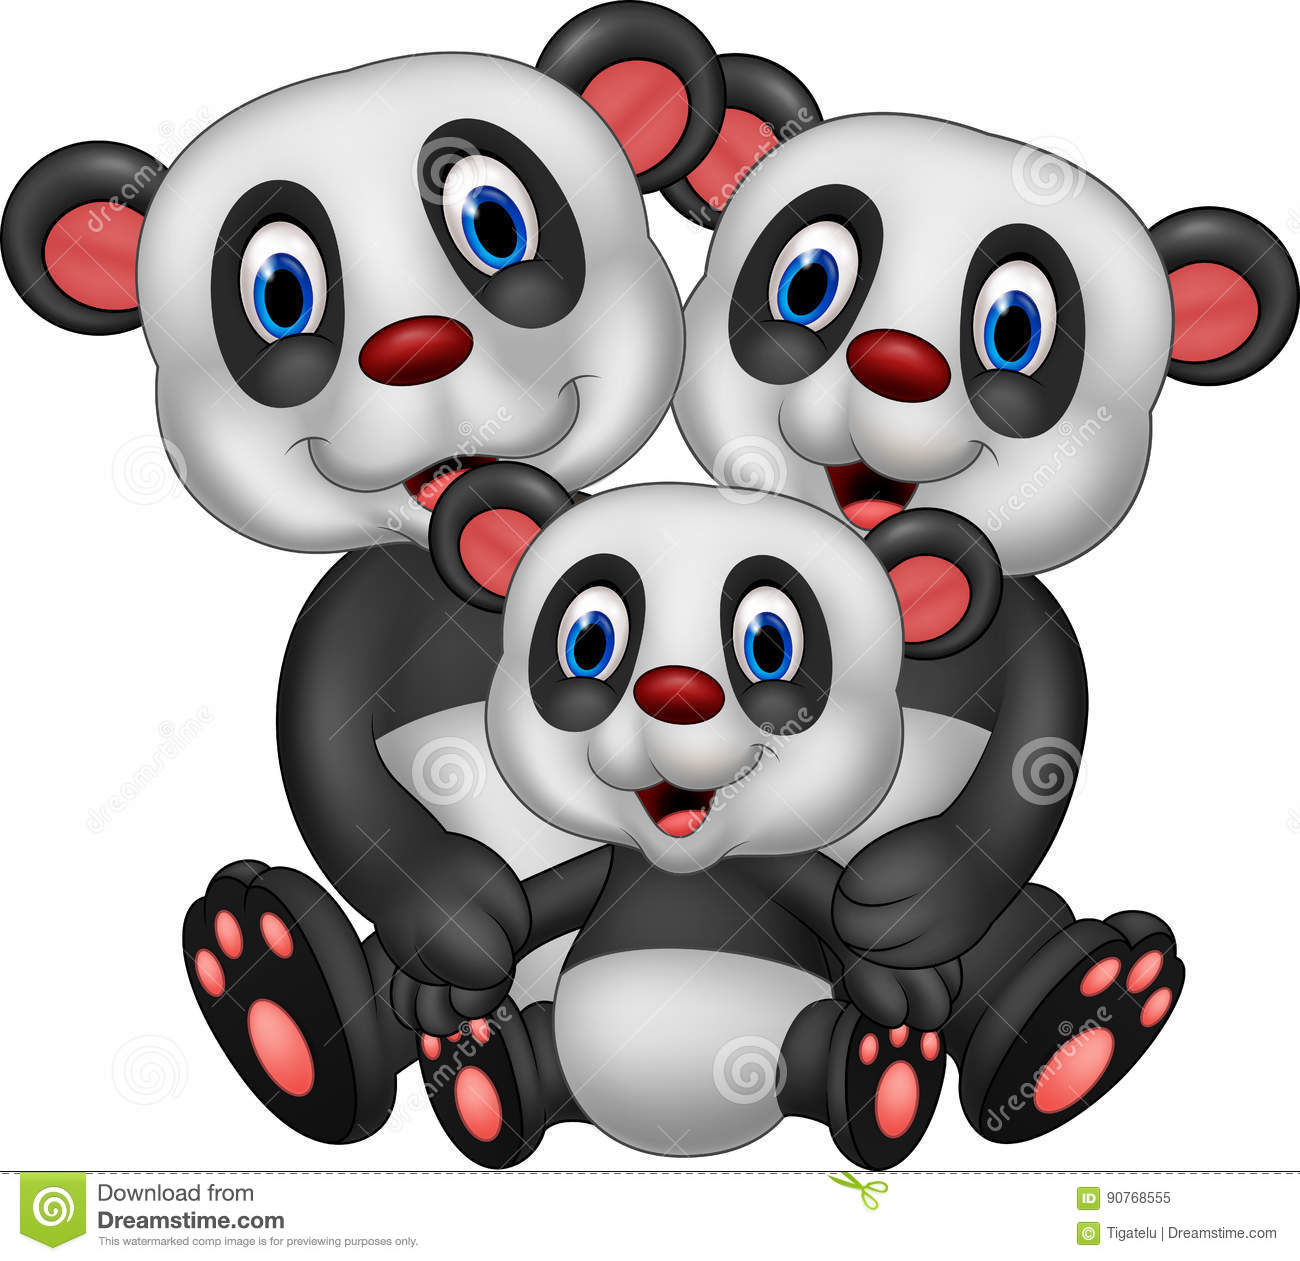 Cartoon panda bear family stock vector. Illustration of ...